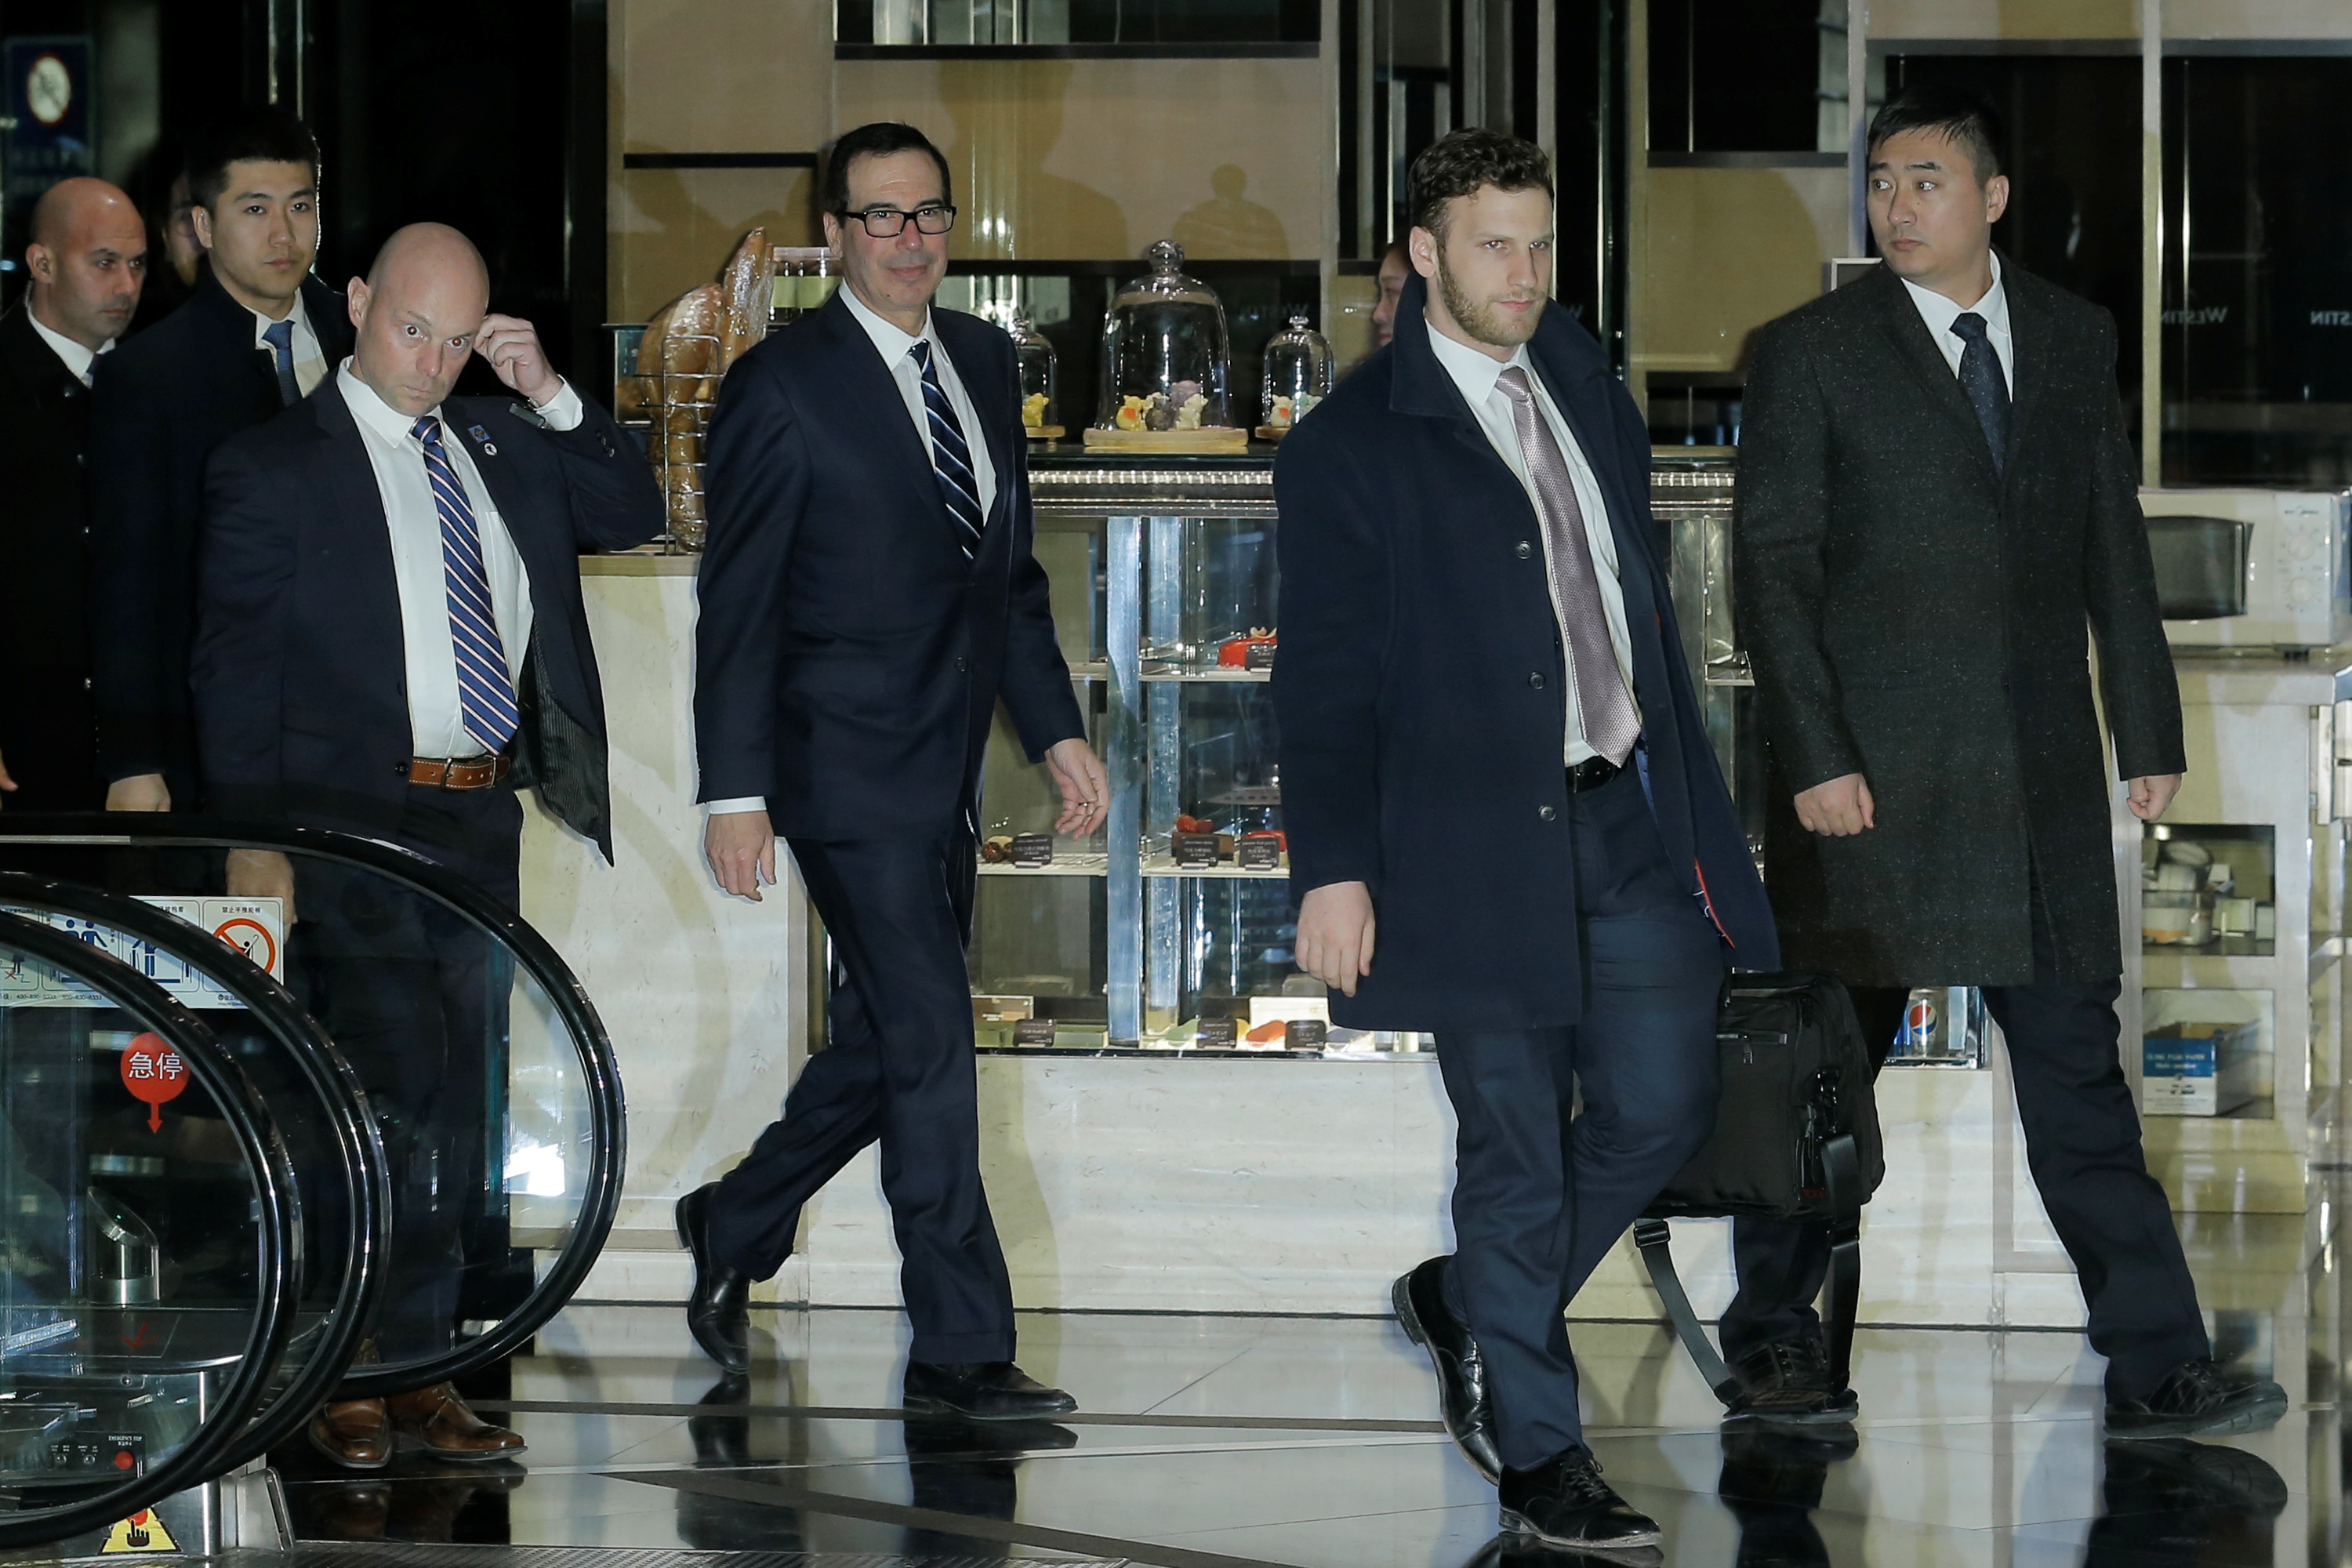 U.S. Treasury Secretary Steven Mnuchin and a member of the U.S. trade delegation to China arrives to a hotel in Beijing, China February 13, 2019. REUTERS/Thomas Peter